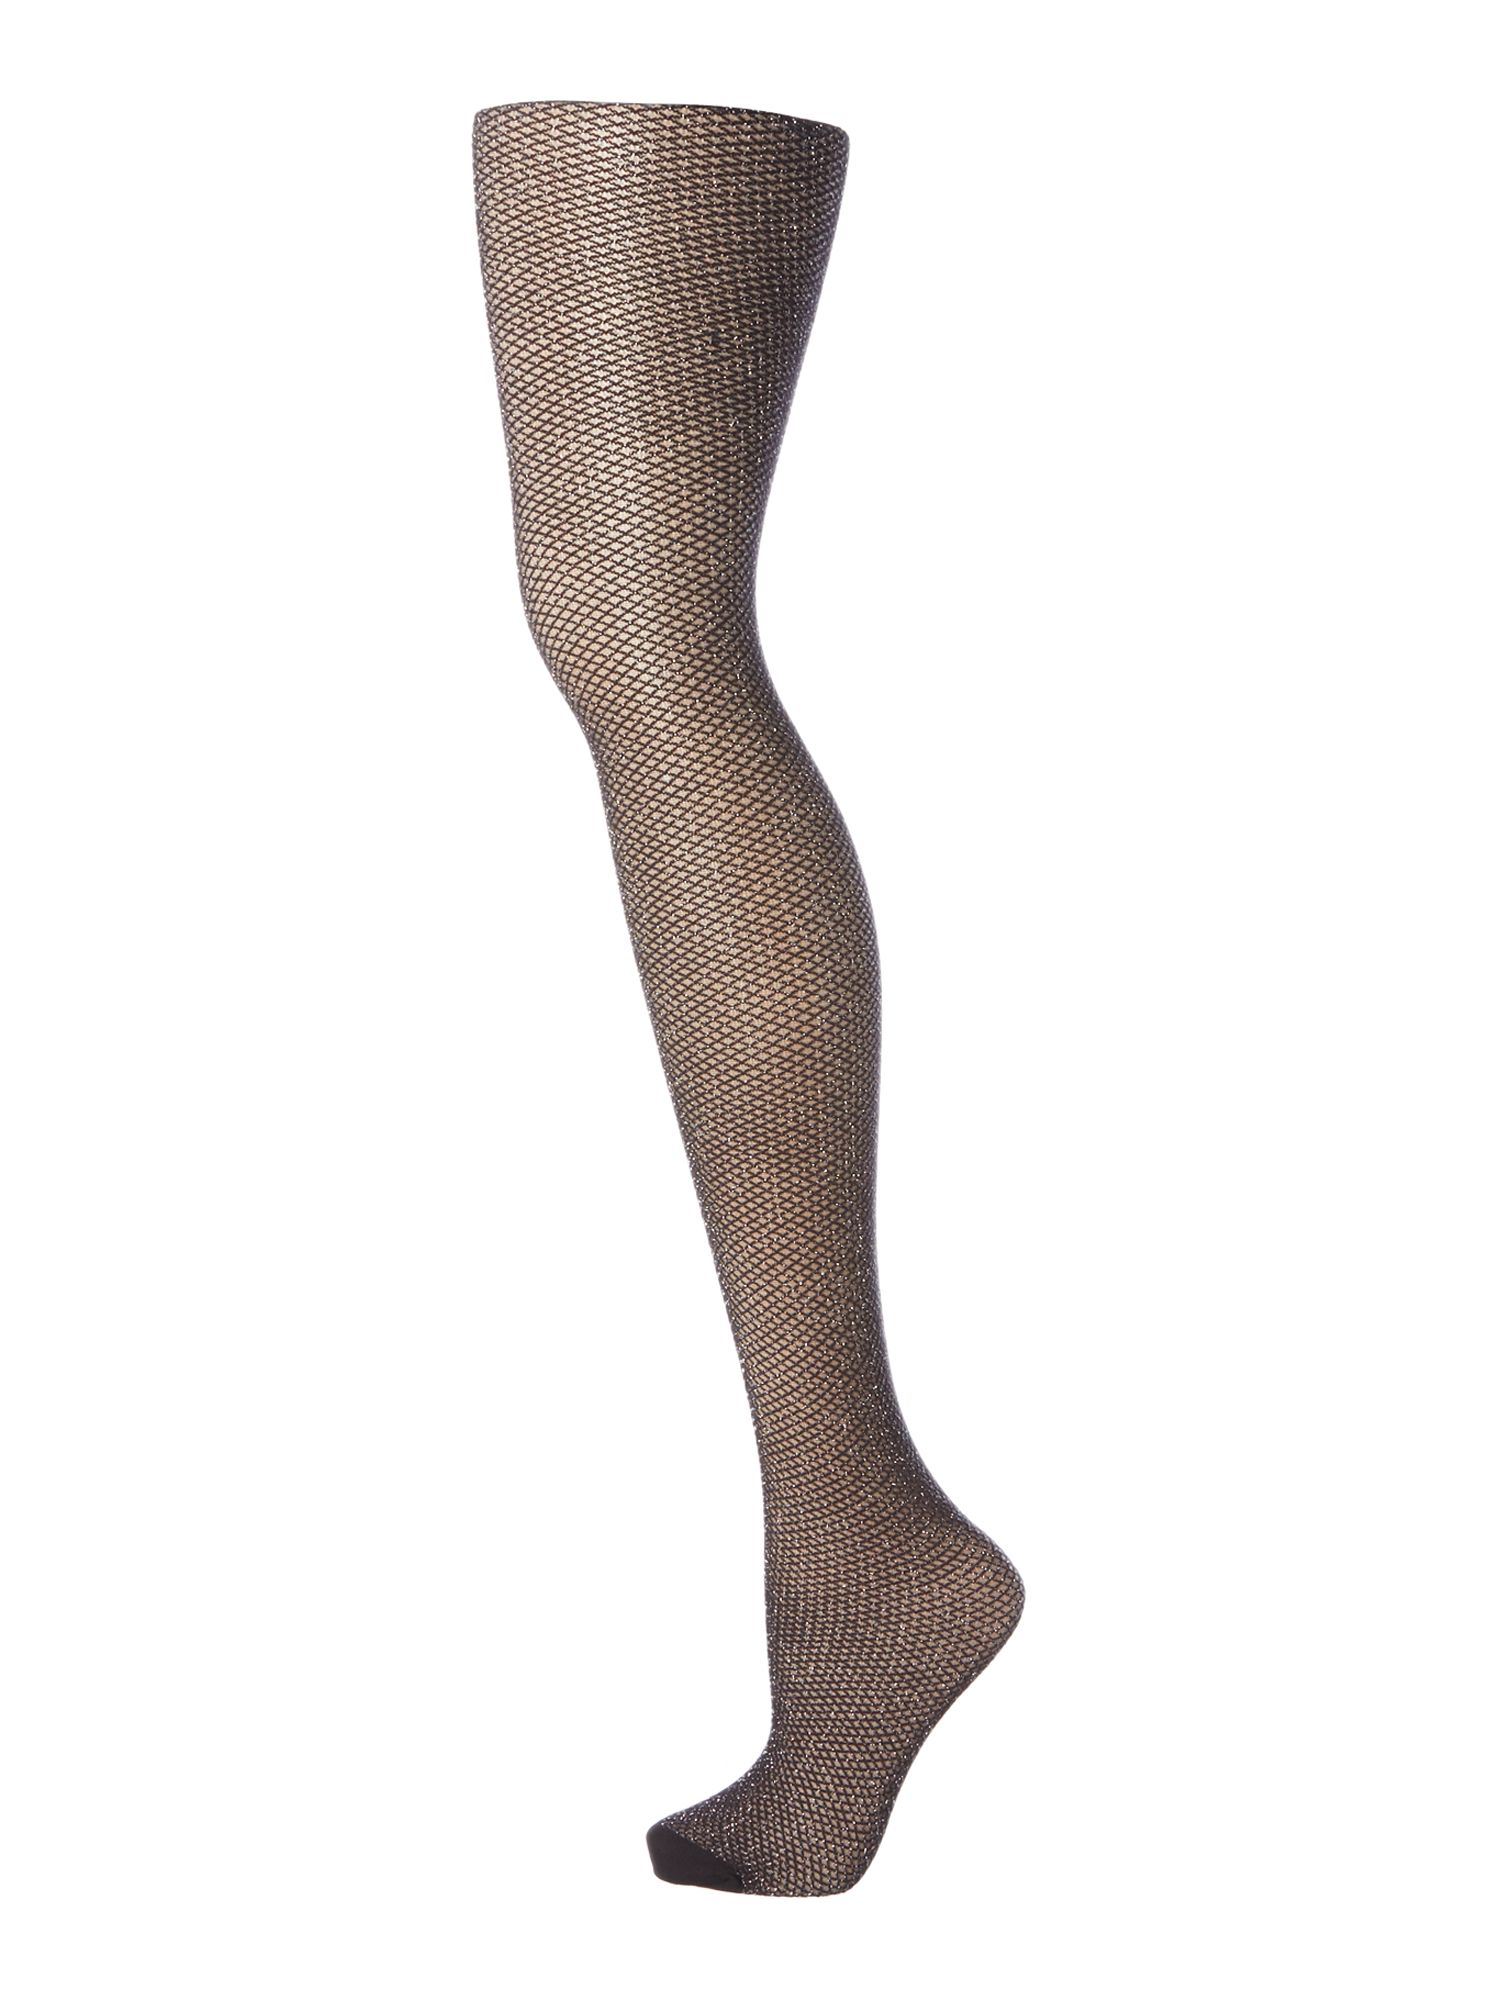 Charnos black mock lurex fishnet tights lyst